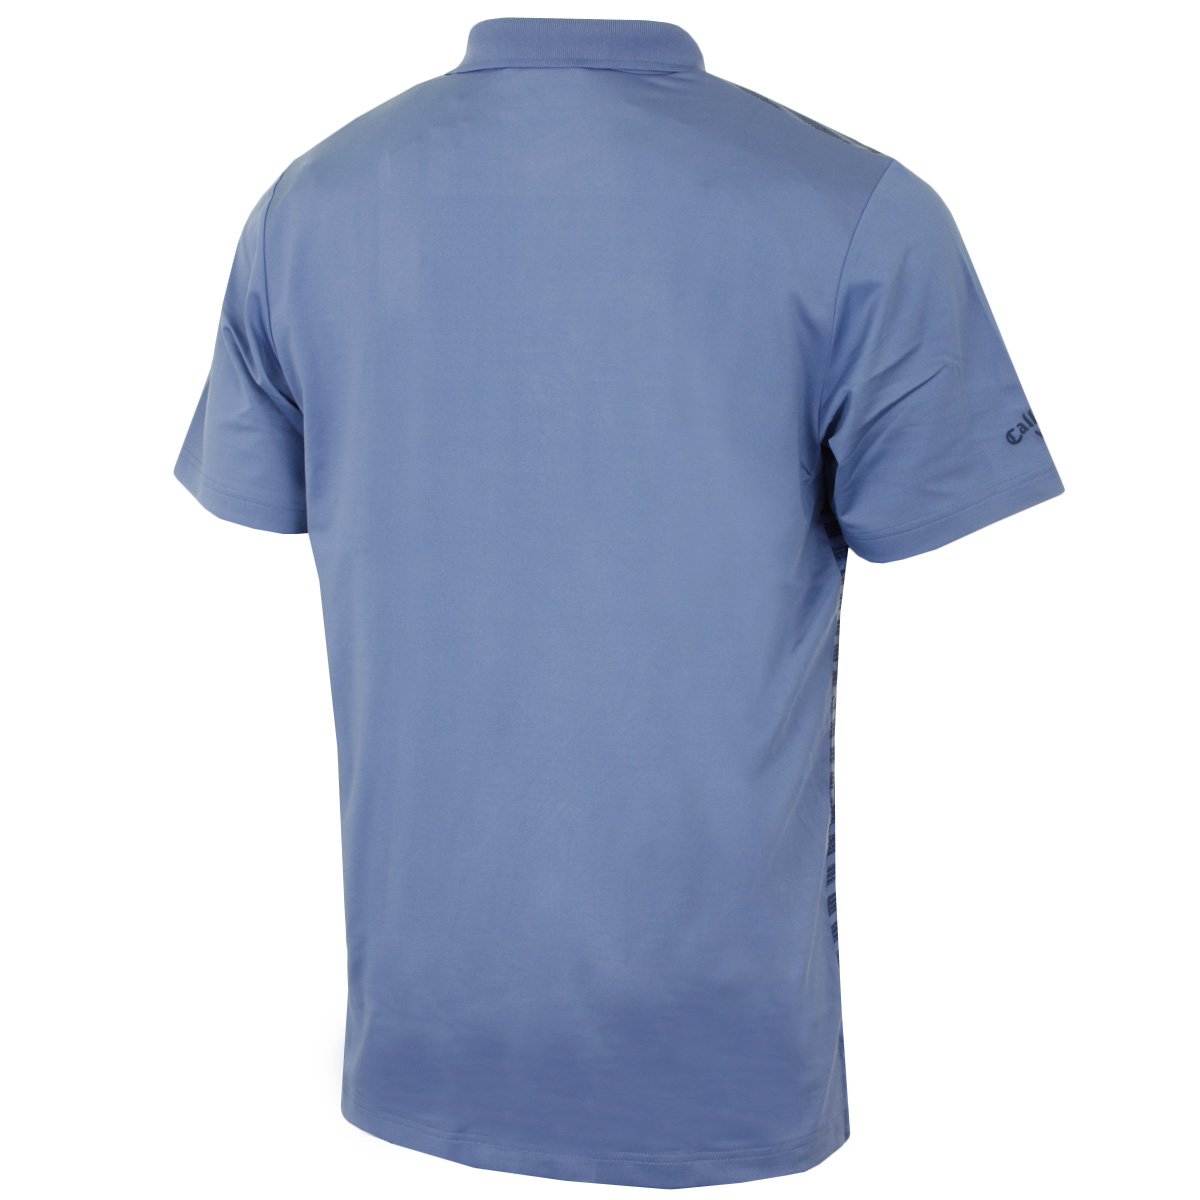 Callaway-Golf-Mens-Ombre-Pocket-Opti-Dri-Stretch-Tech-Polo-Shirt-51-OFF-RRP thumbnail 3